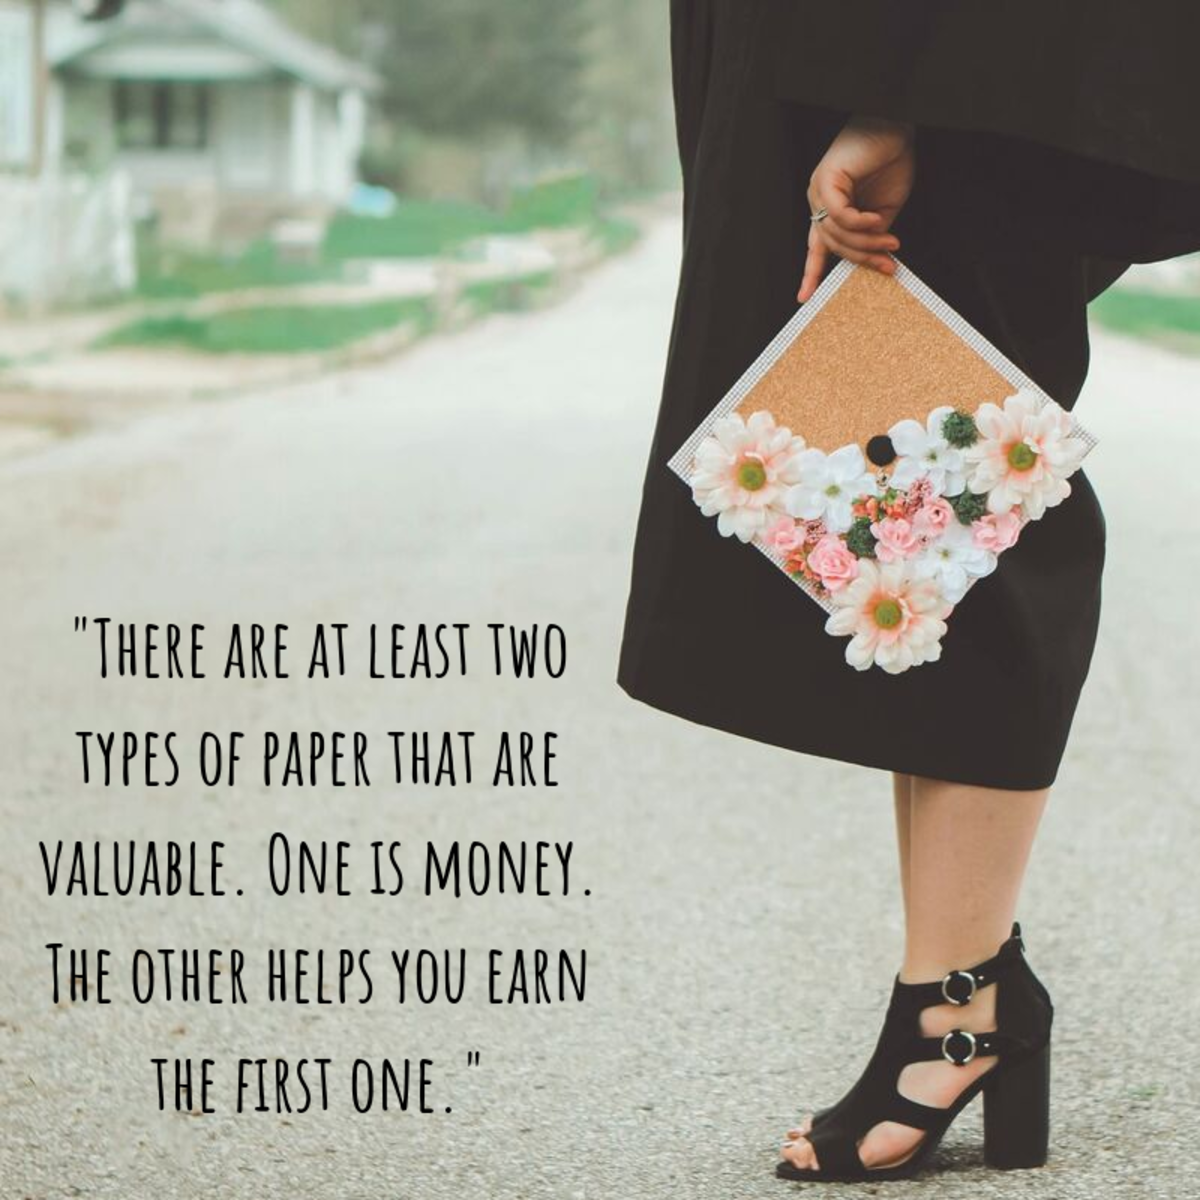 Whether your card is humorous or sincere, make sure to congratulate the graduate in your life on all their hard work.